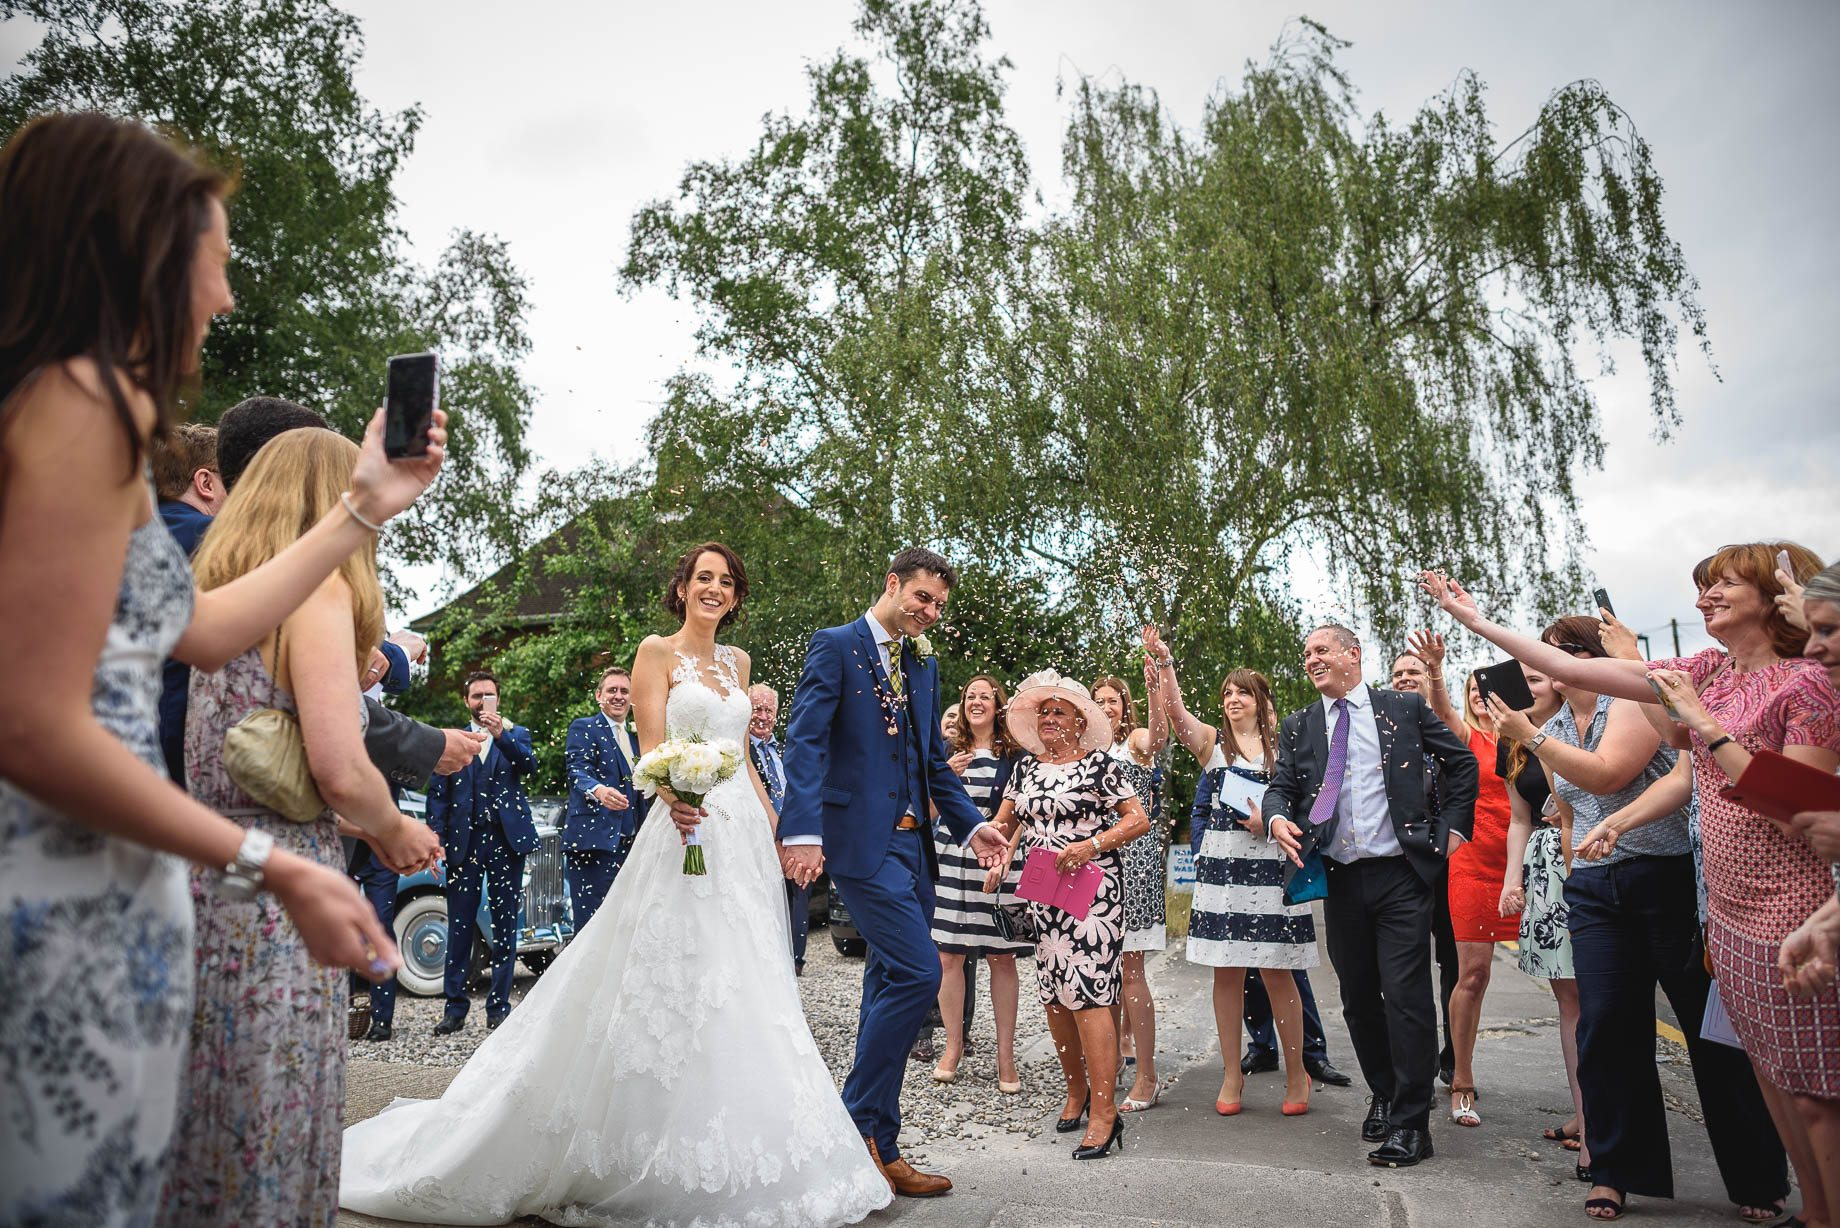 Hertfordshire wedding photography - Sarah and Stephen by Guy Collier Photography (79 of 161)